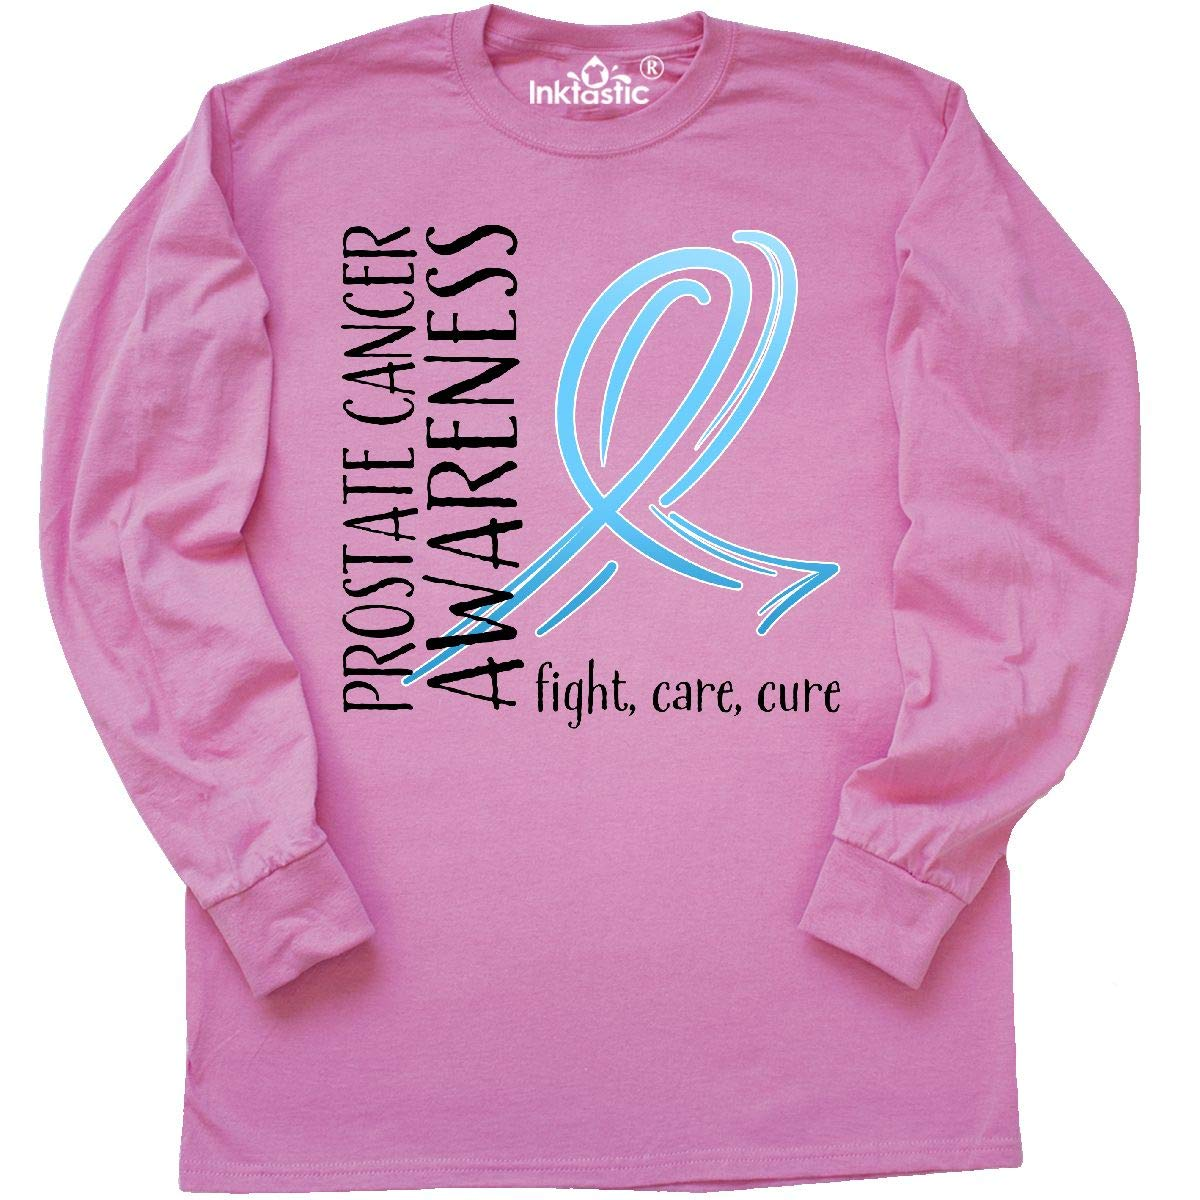 19959a60 Amazon.com: inktastic - Prostate Cancer Awareness- Fight, Care, Cure Long  Sleeve T-Shirt: Clothing